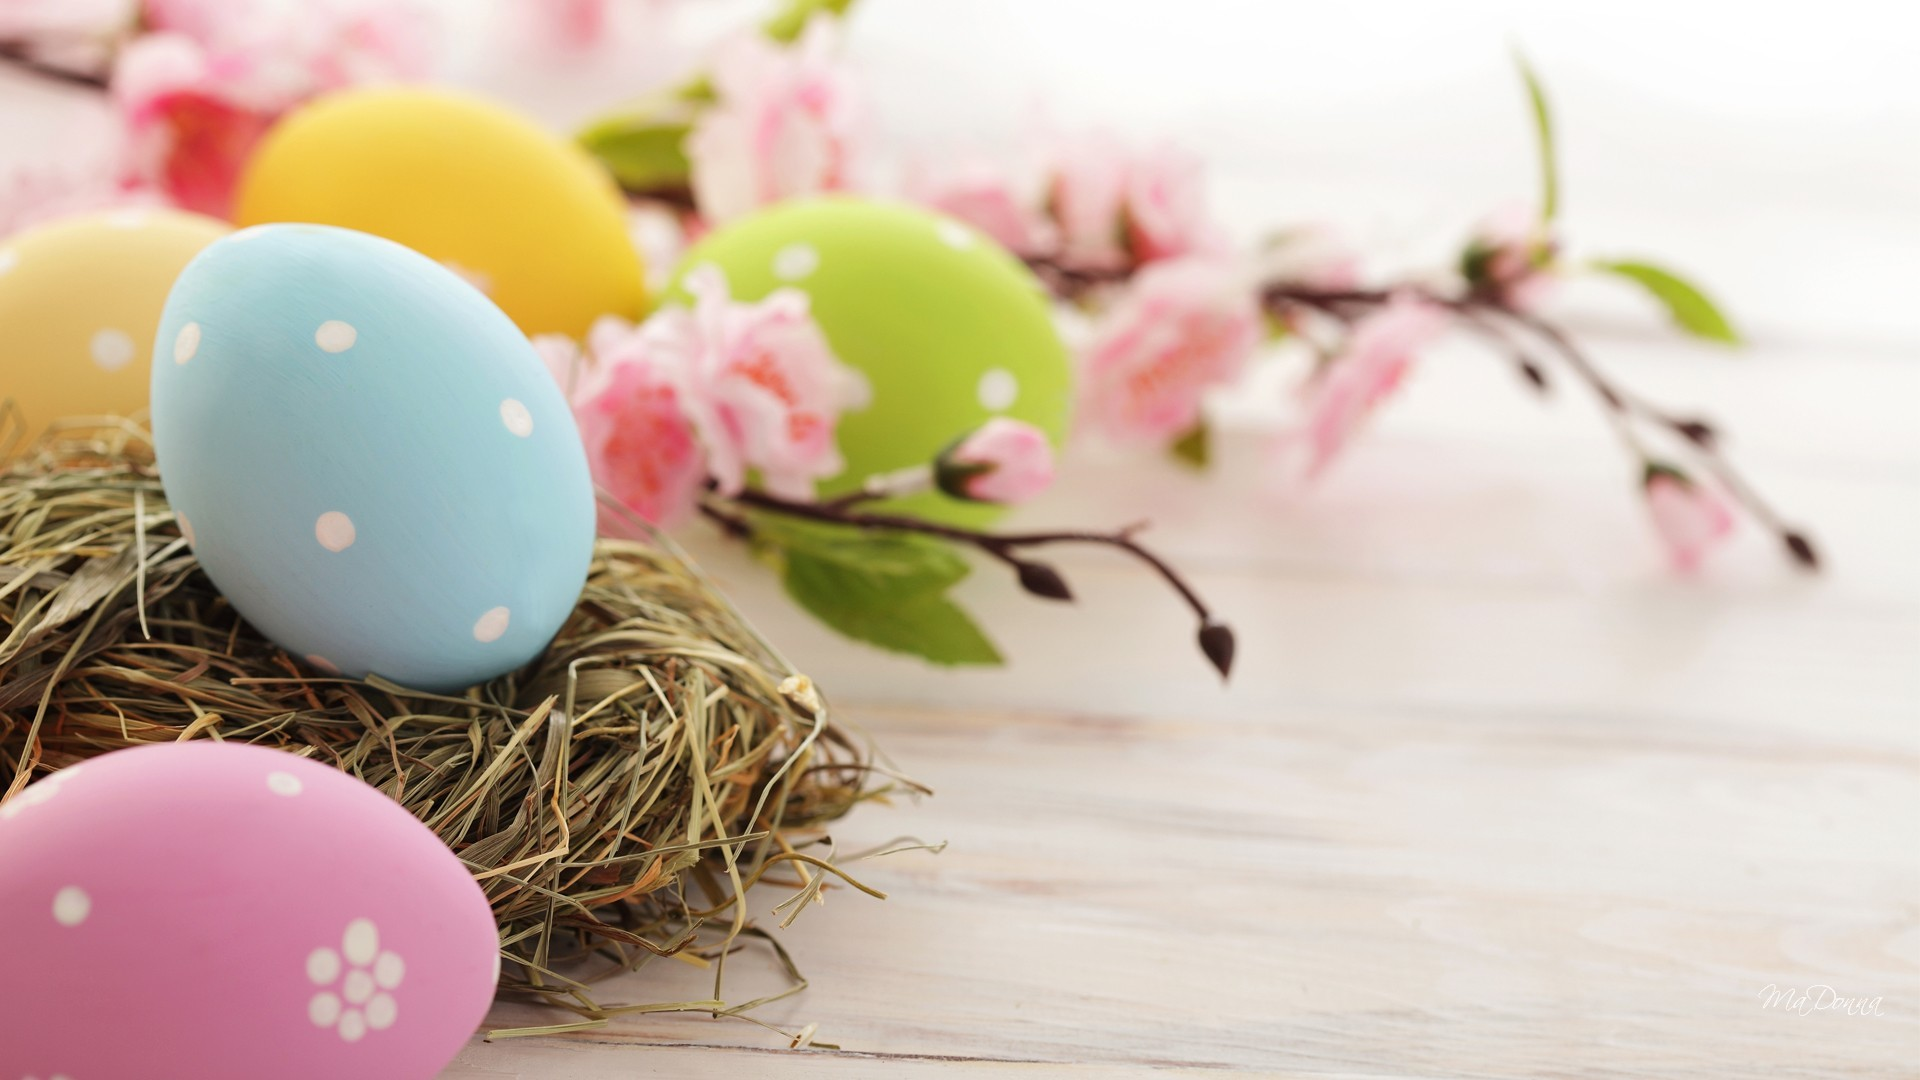 1920x1080 Free Hd Easter Wallpaper (01)